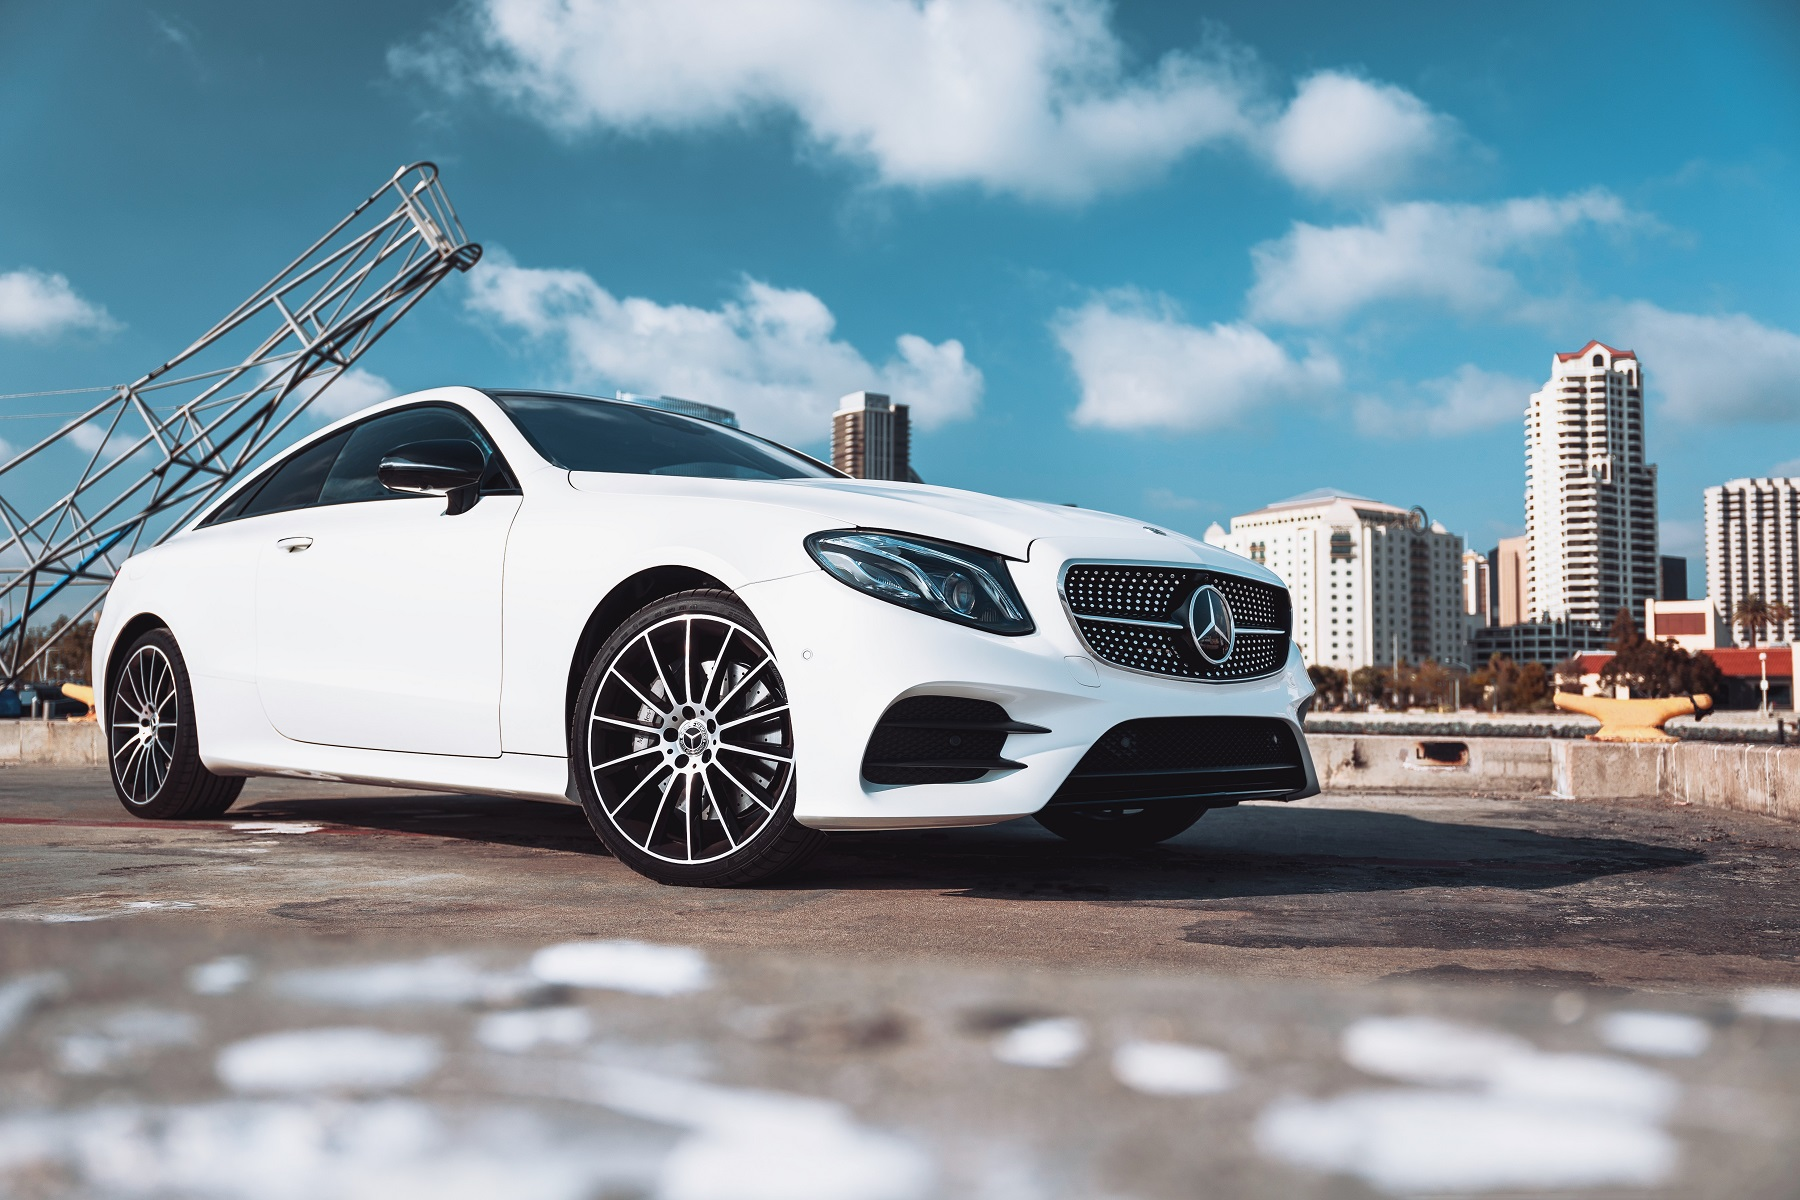 hight resolution of  simplistic yet elegant lines and sensual organic forms examples the large mercedes star emblem centered in the bold radiating diamond block grille